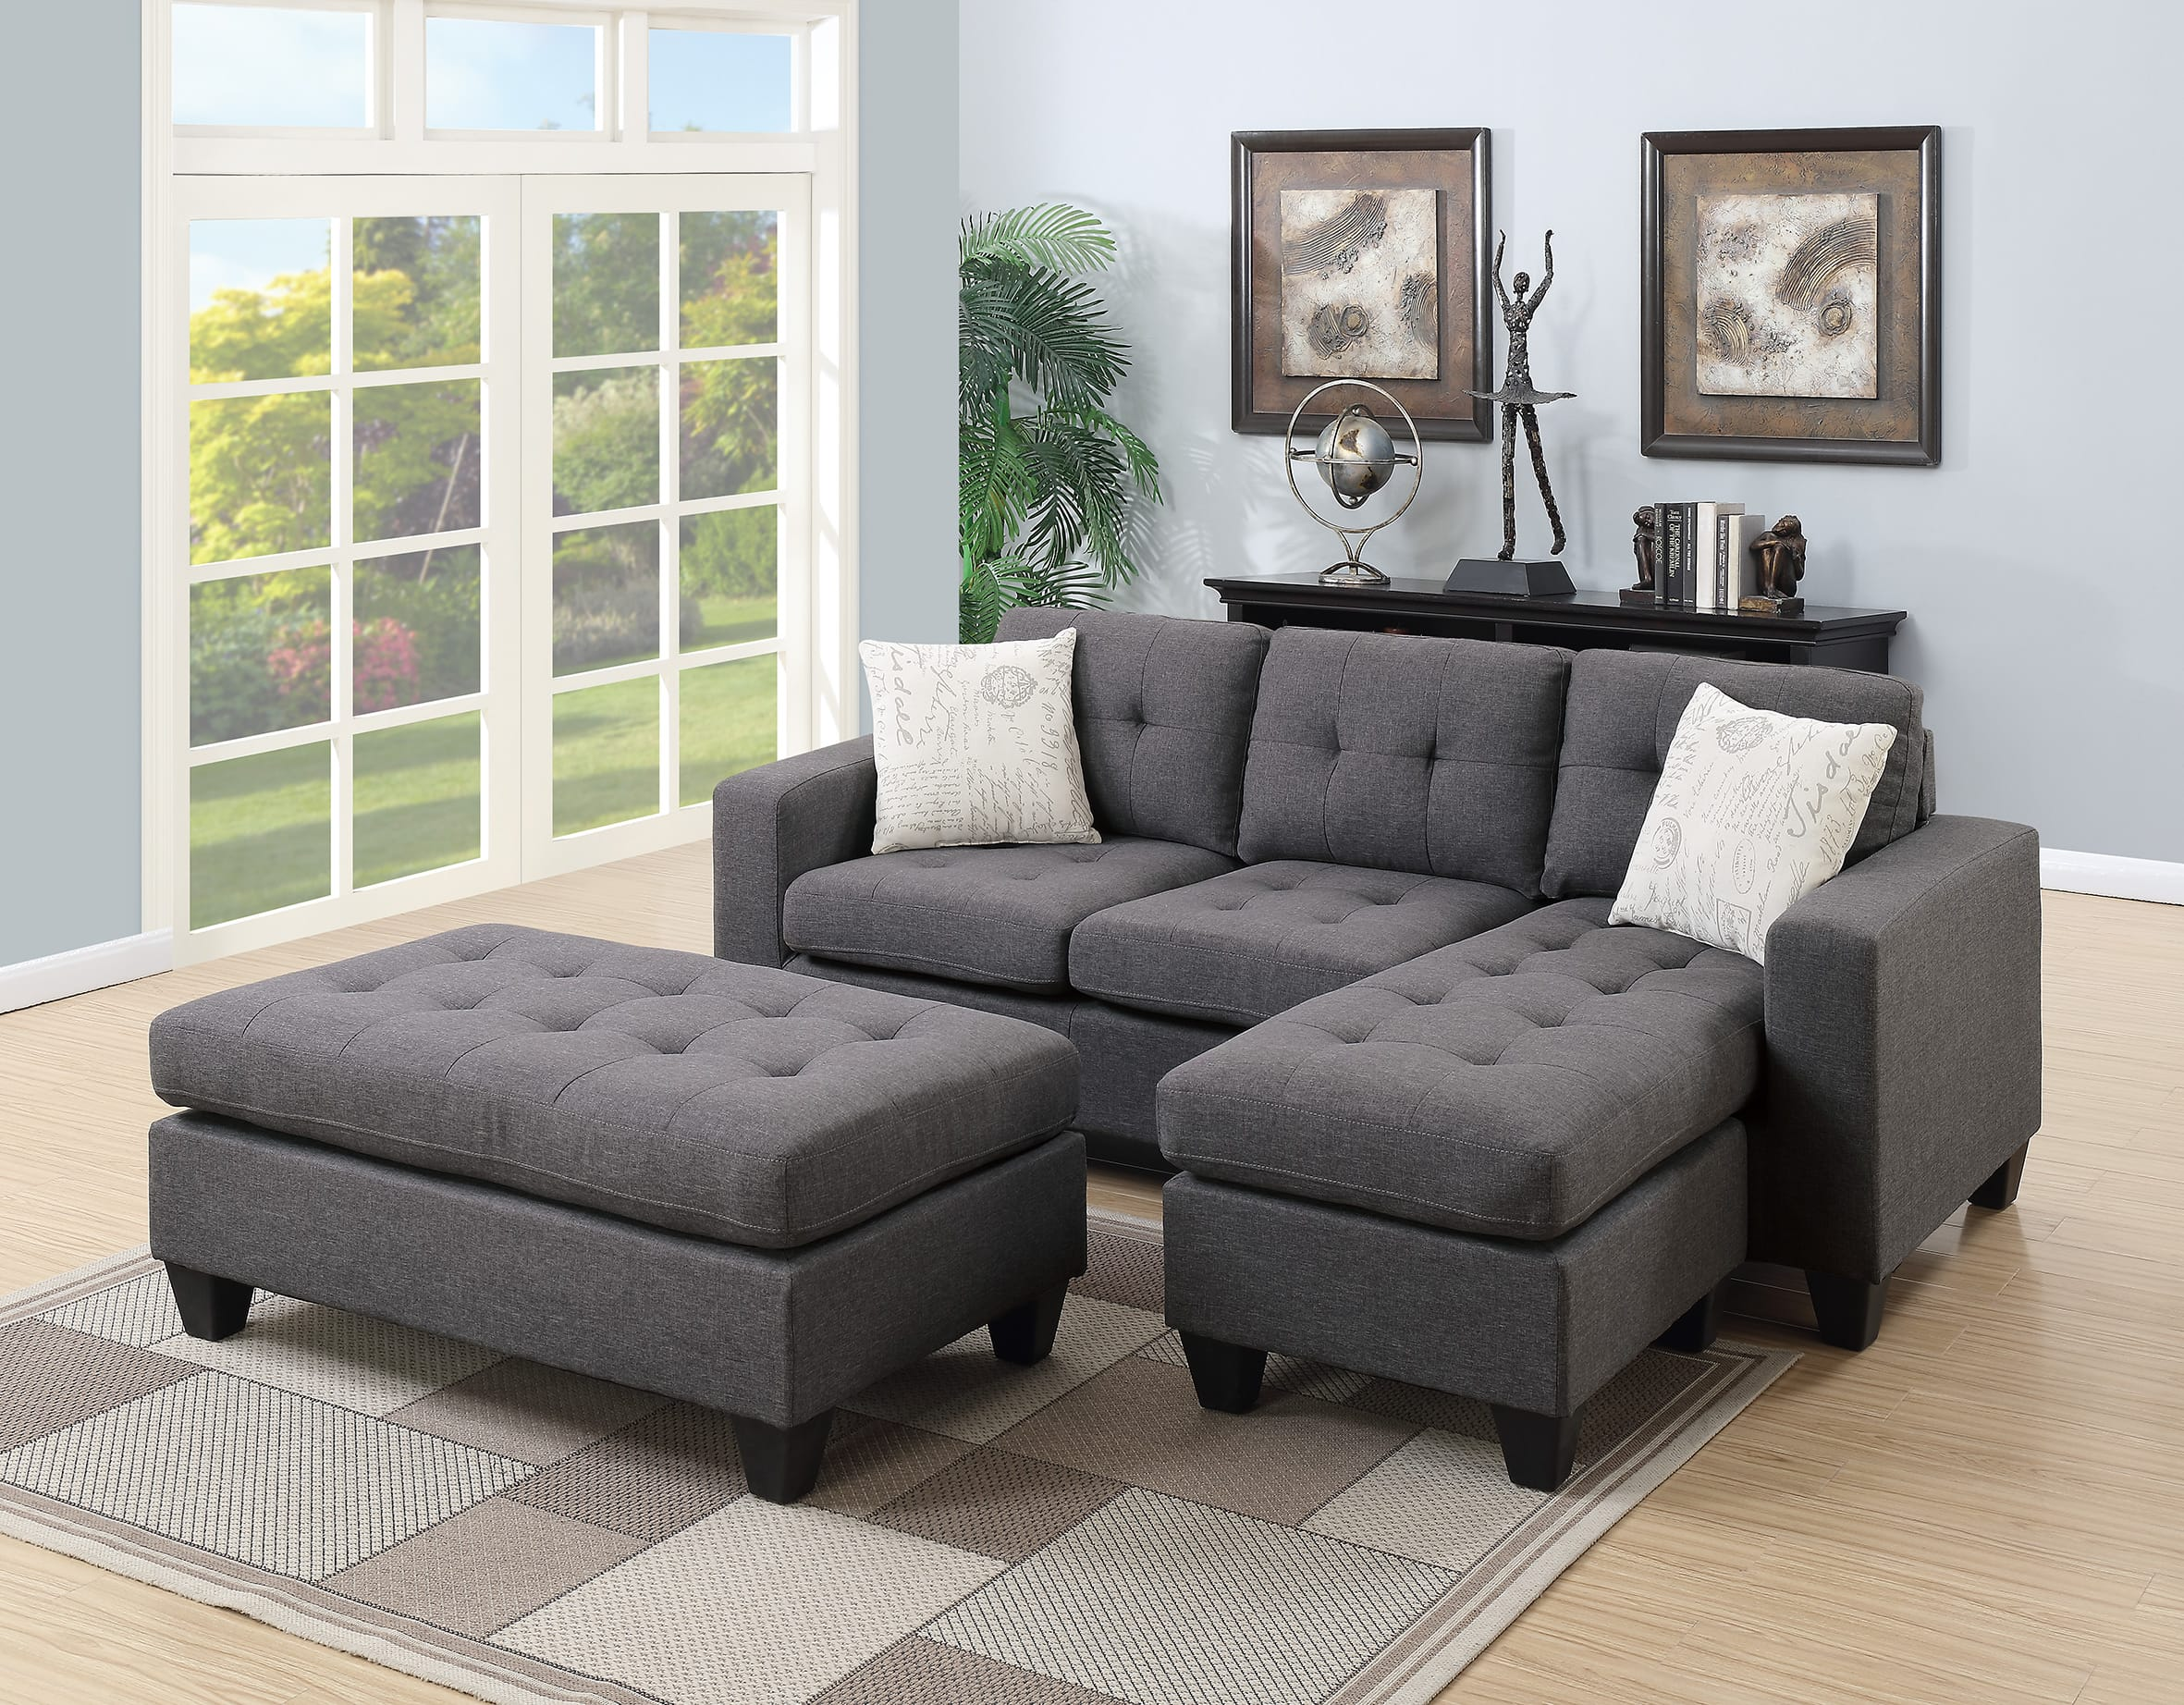 F6920 Blue Gray Sectional Sofa Set By Poundex ~ Blue Gray Sectional Sofa